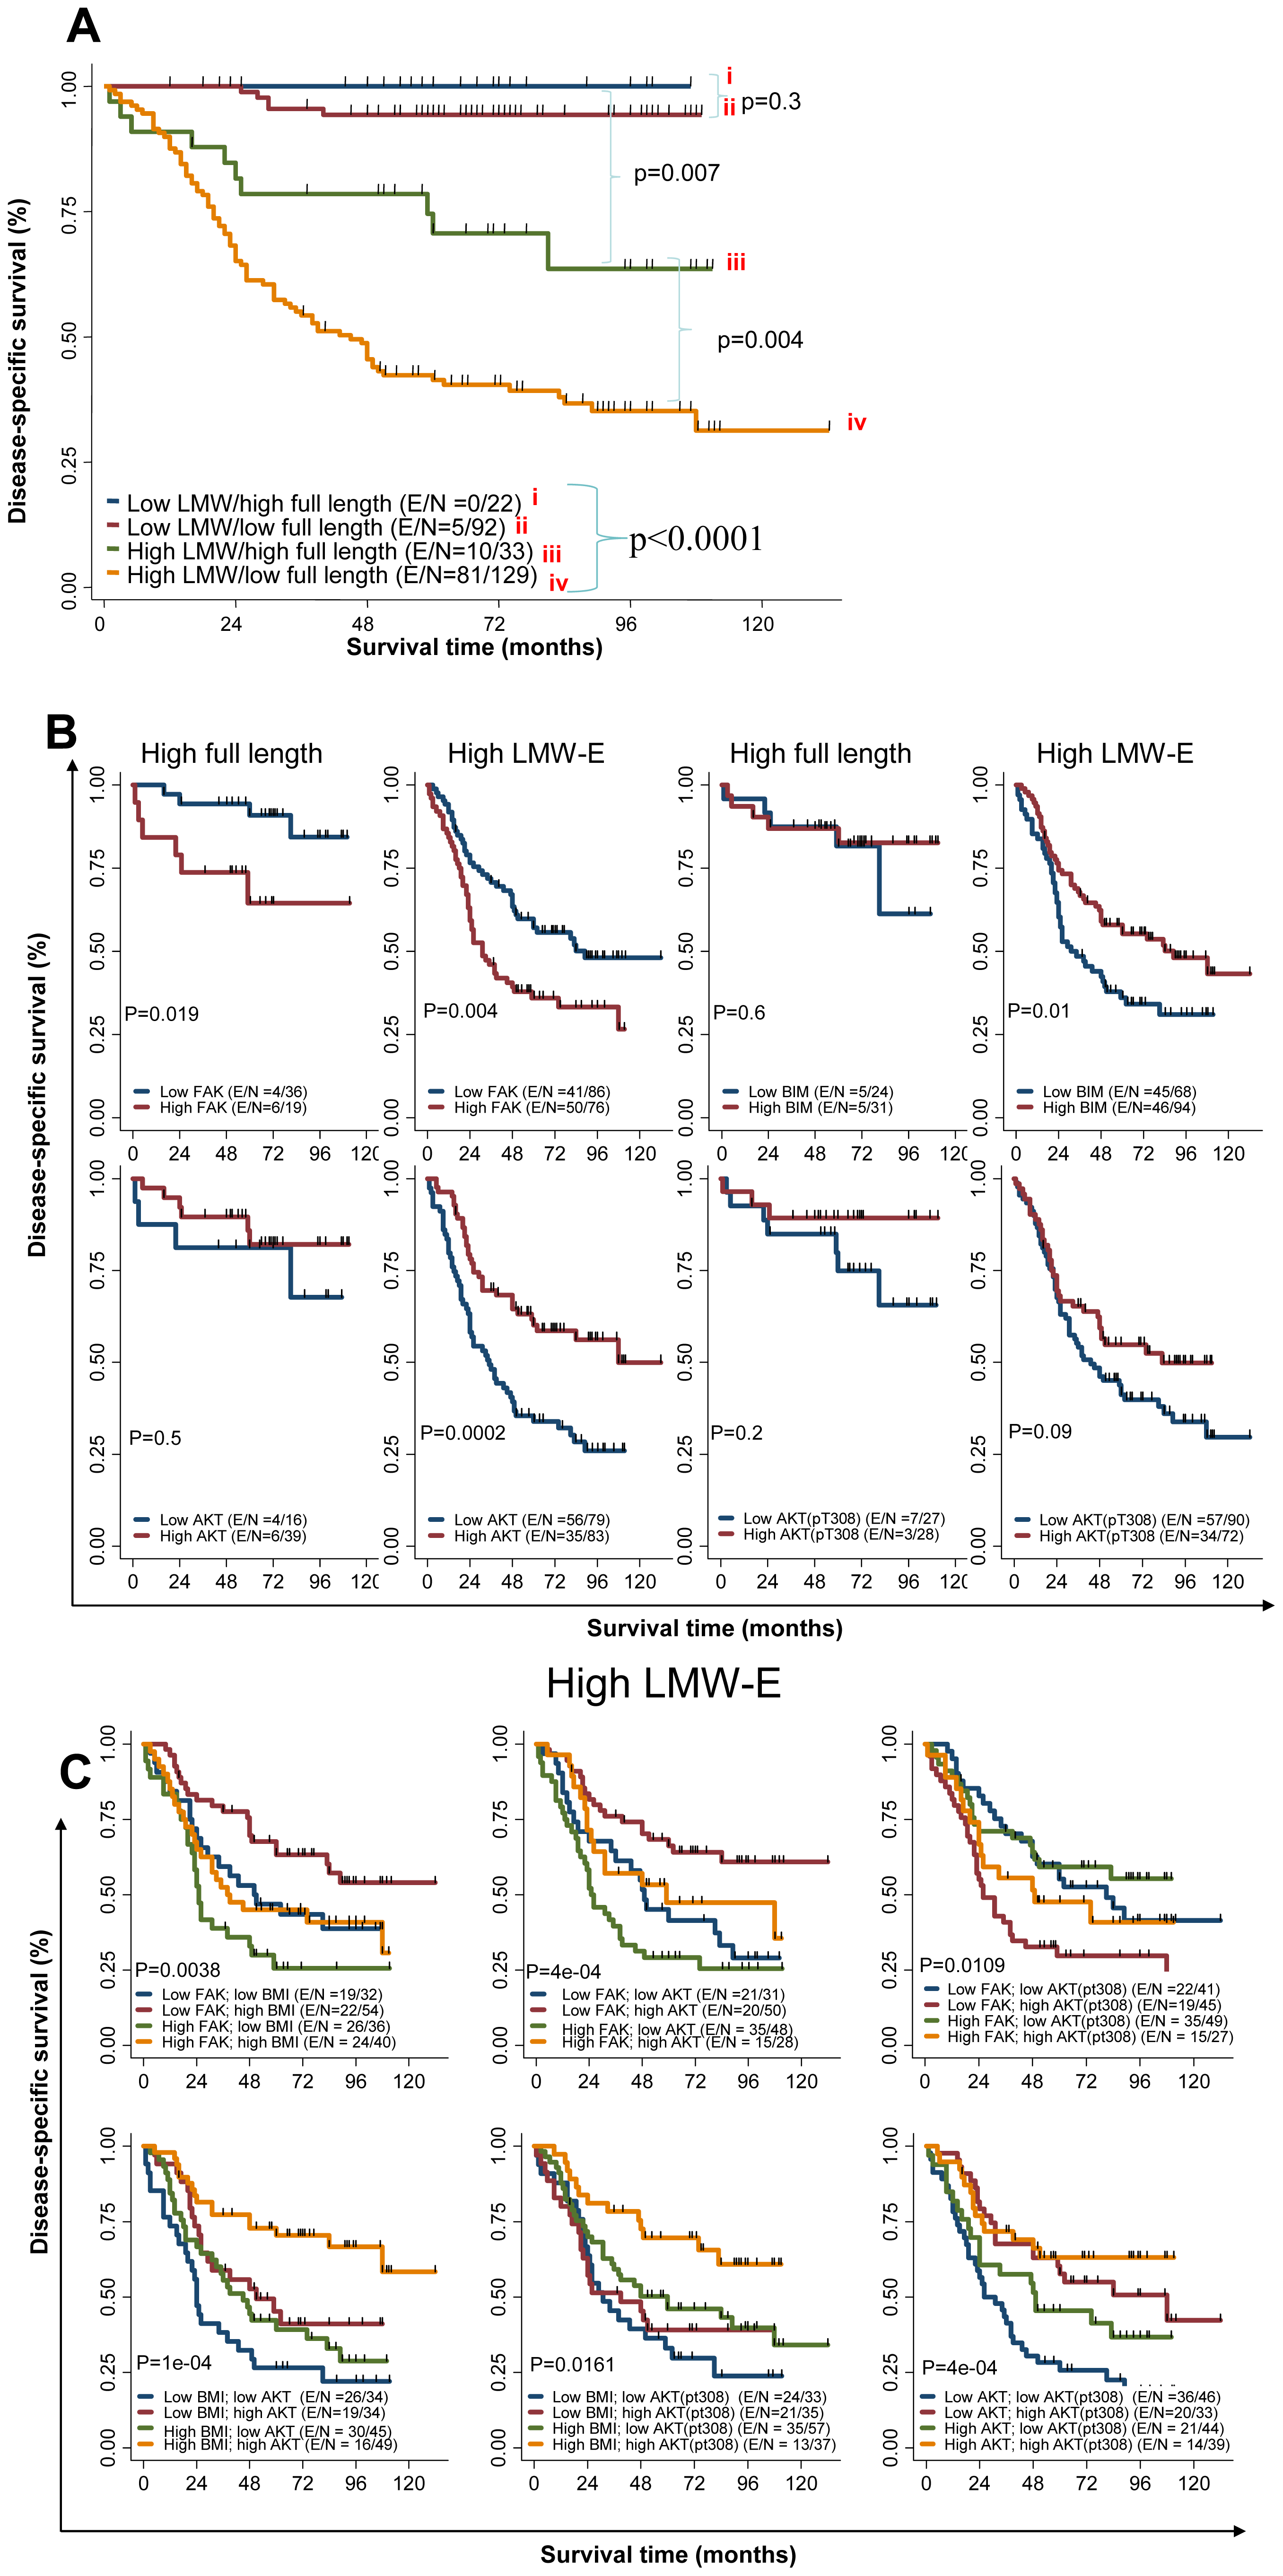 Activated b-Raf-ERK1/2-mTOR signaling pathway and high LMW-E expression predict poor survival in breast cancer patients.